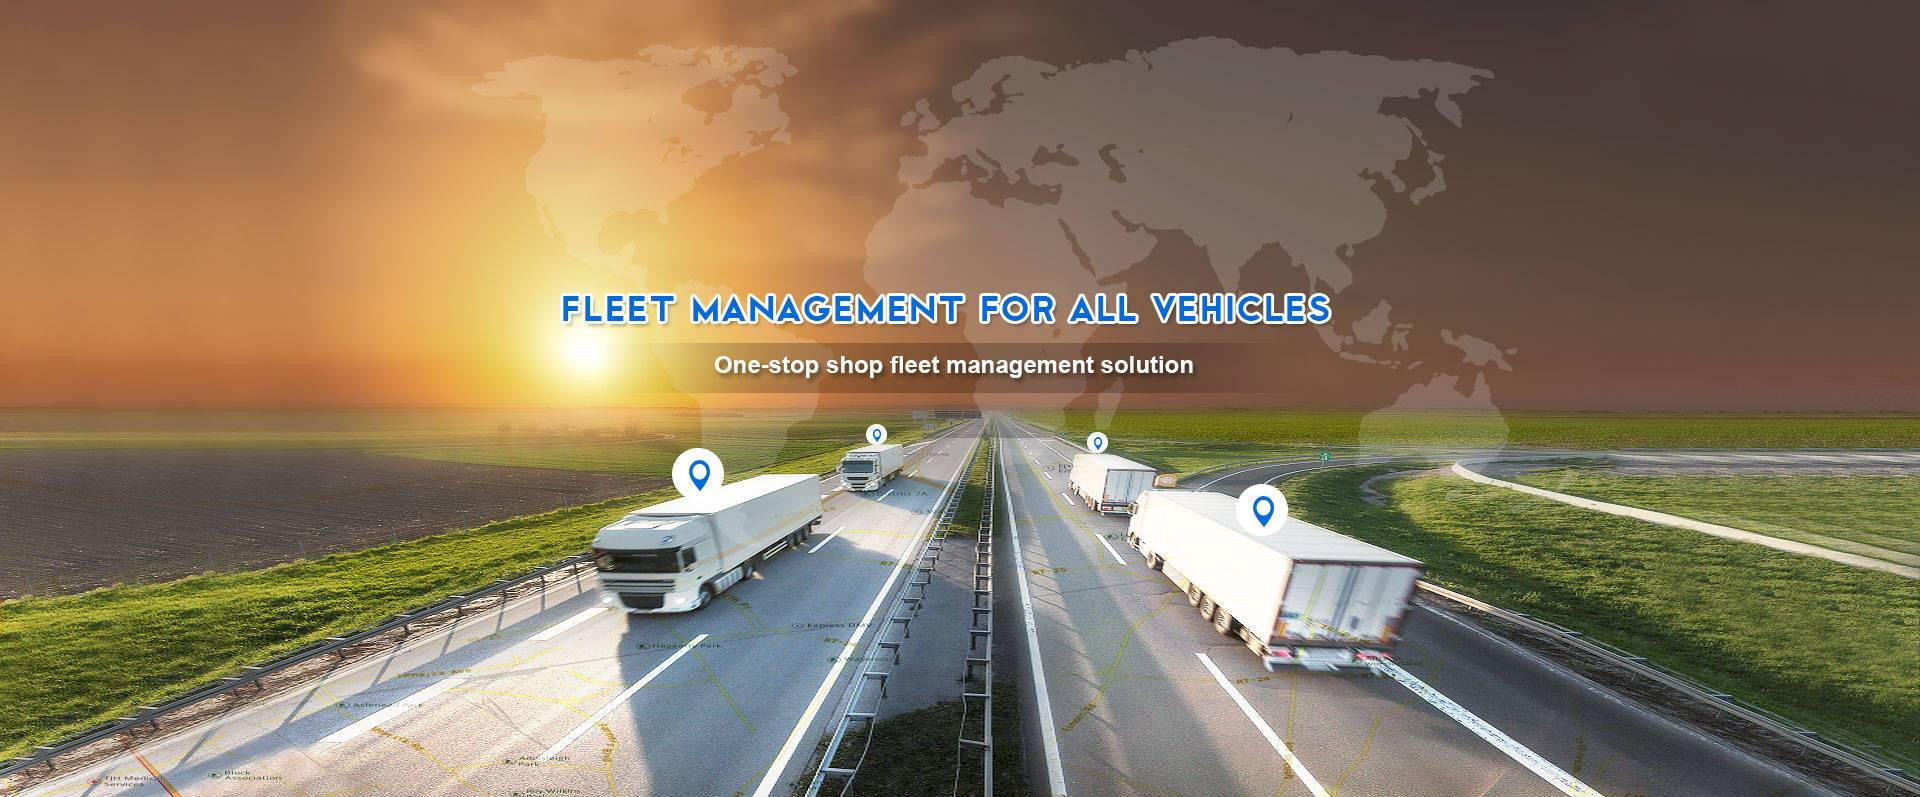 gps tracking device manufacturer